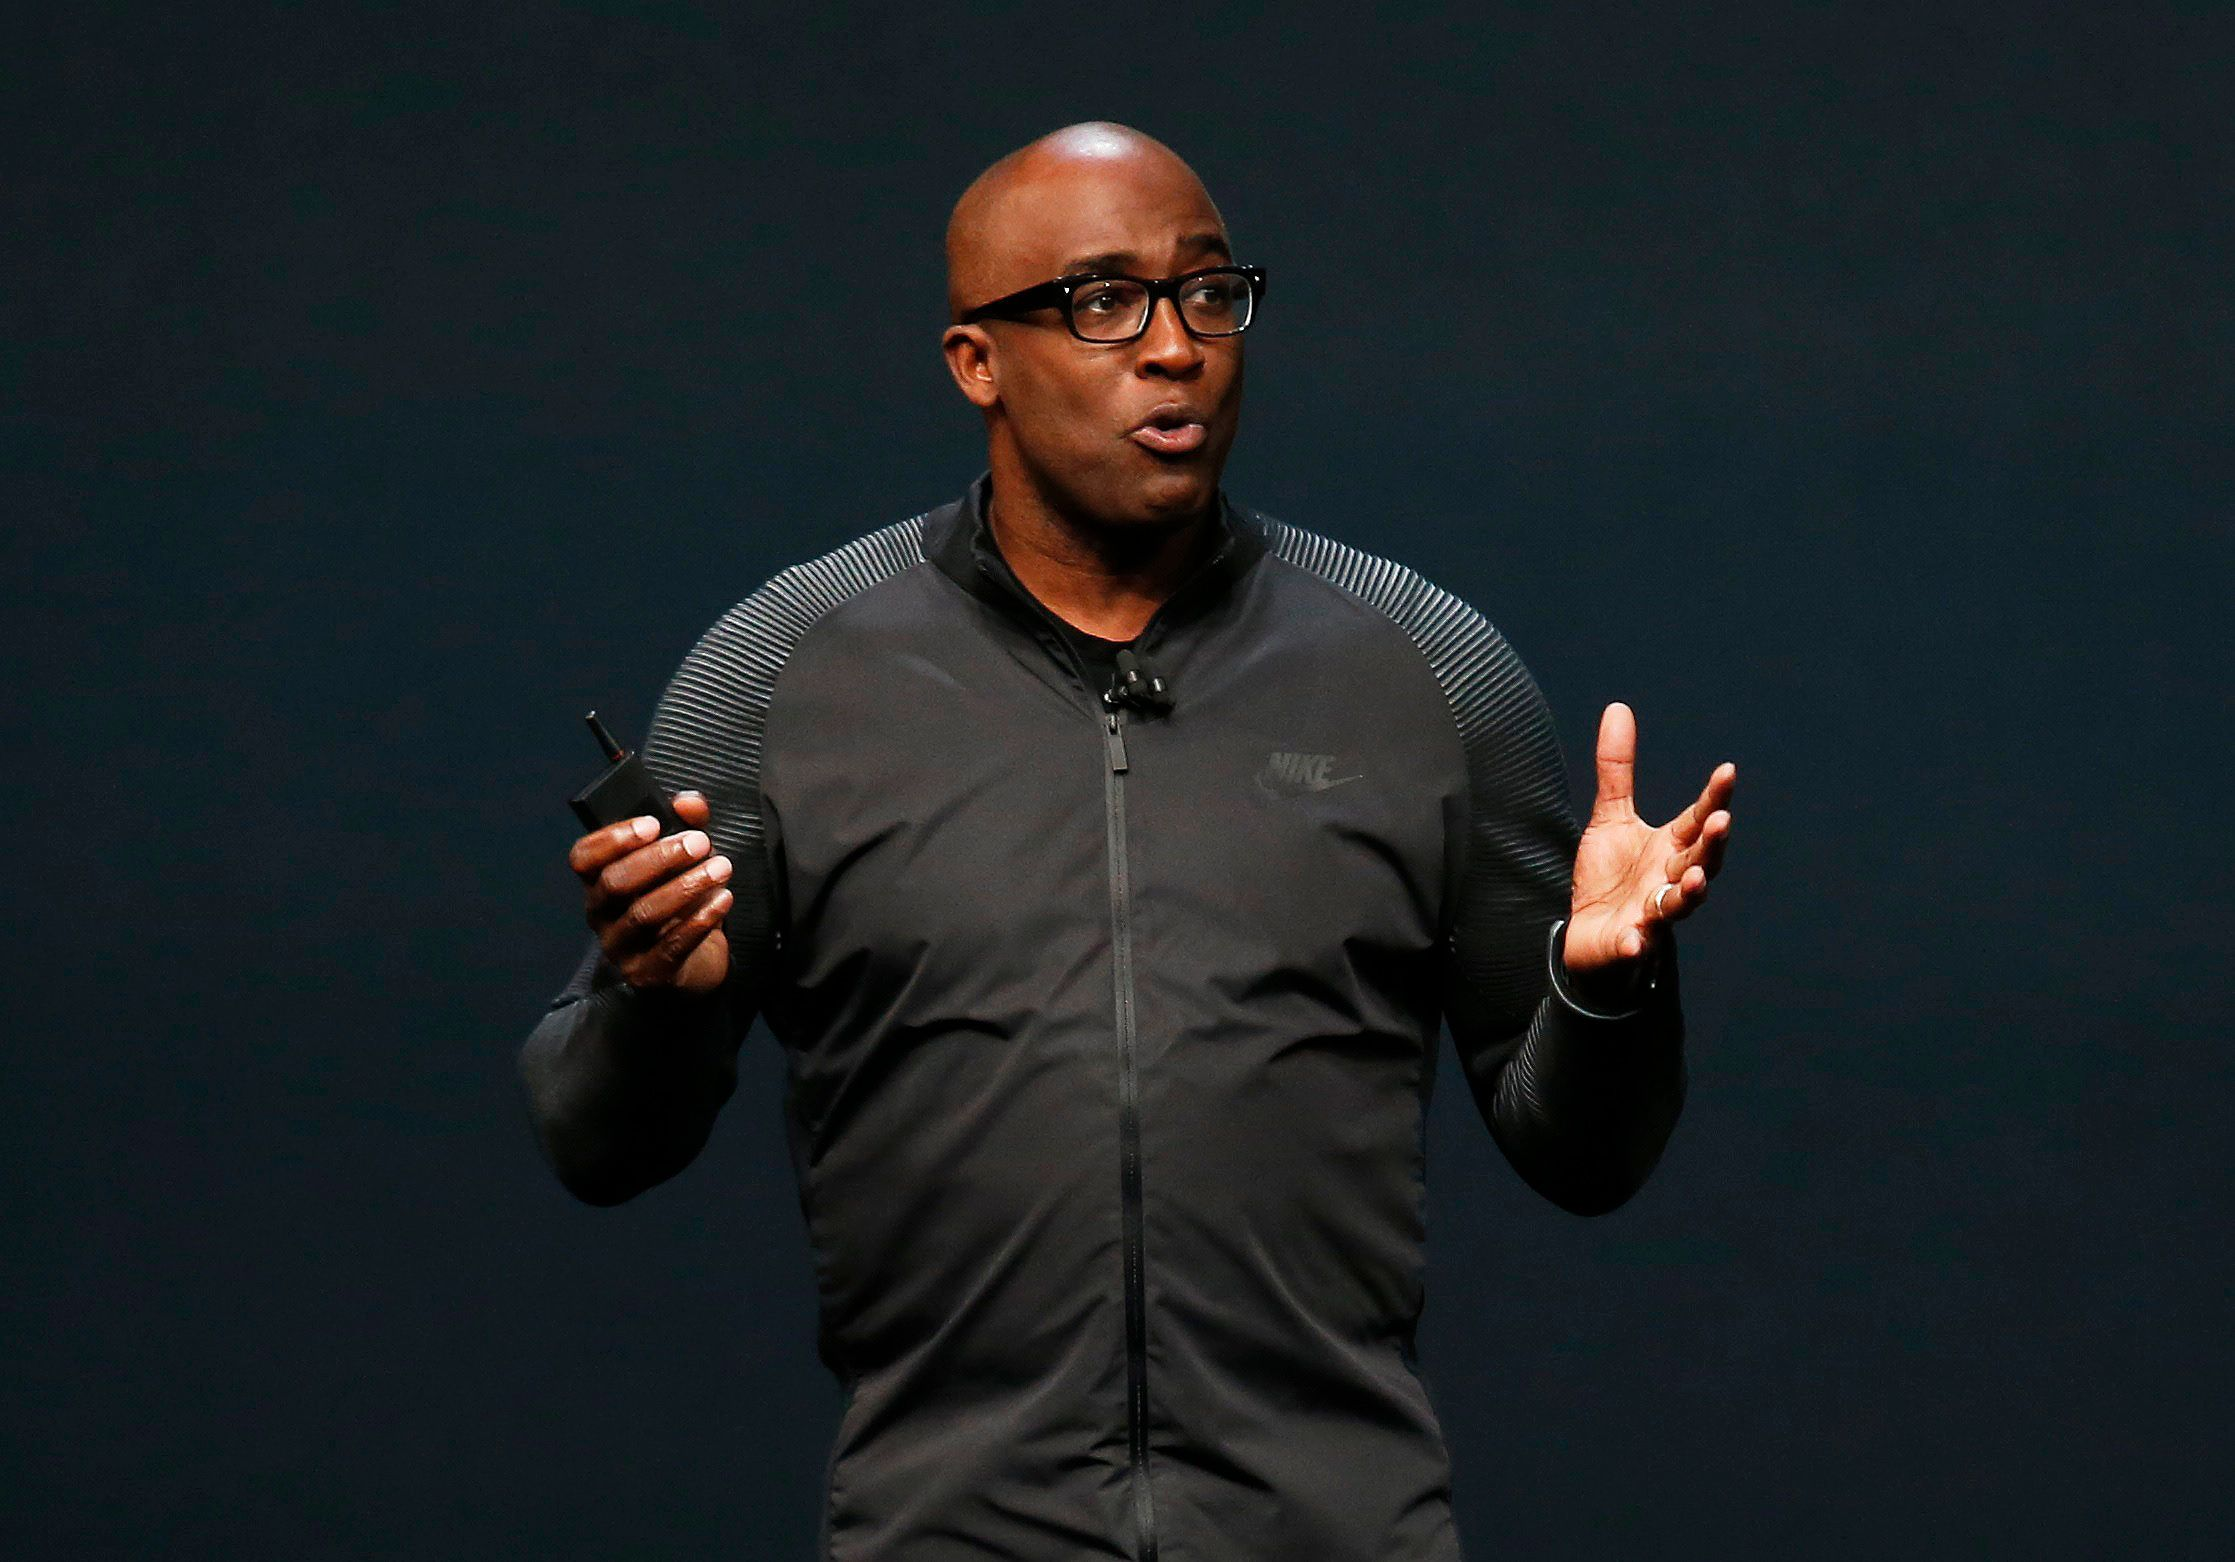 Jayme Martin second Nike executive to exit this week